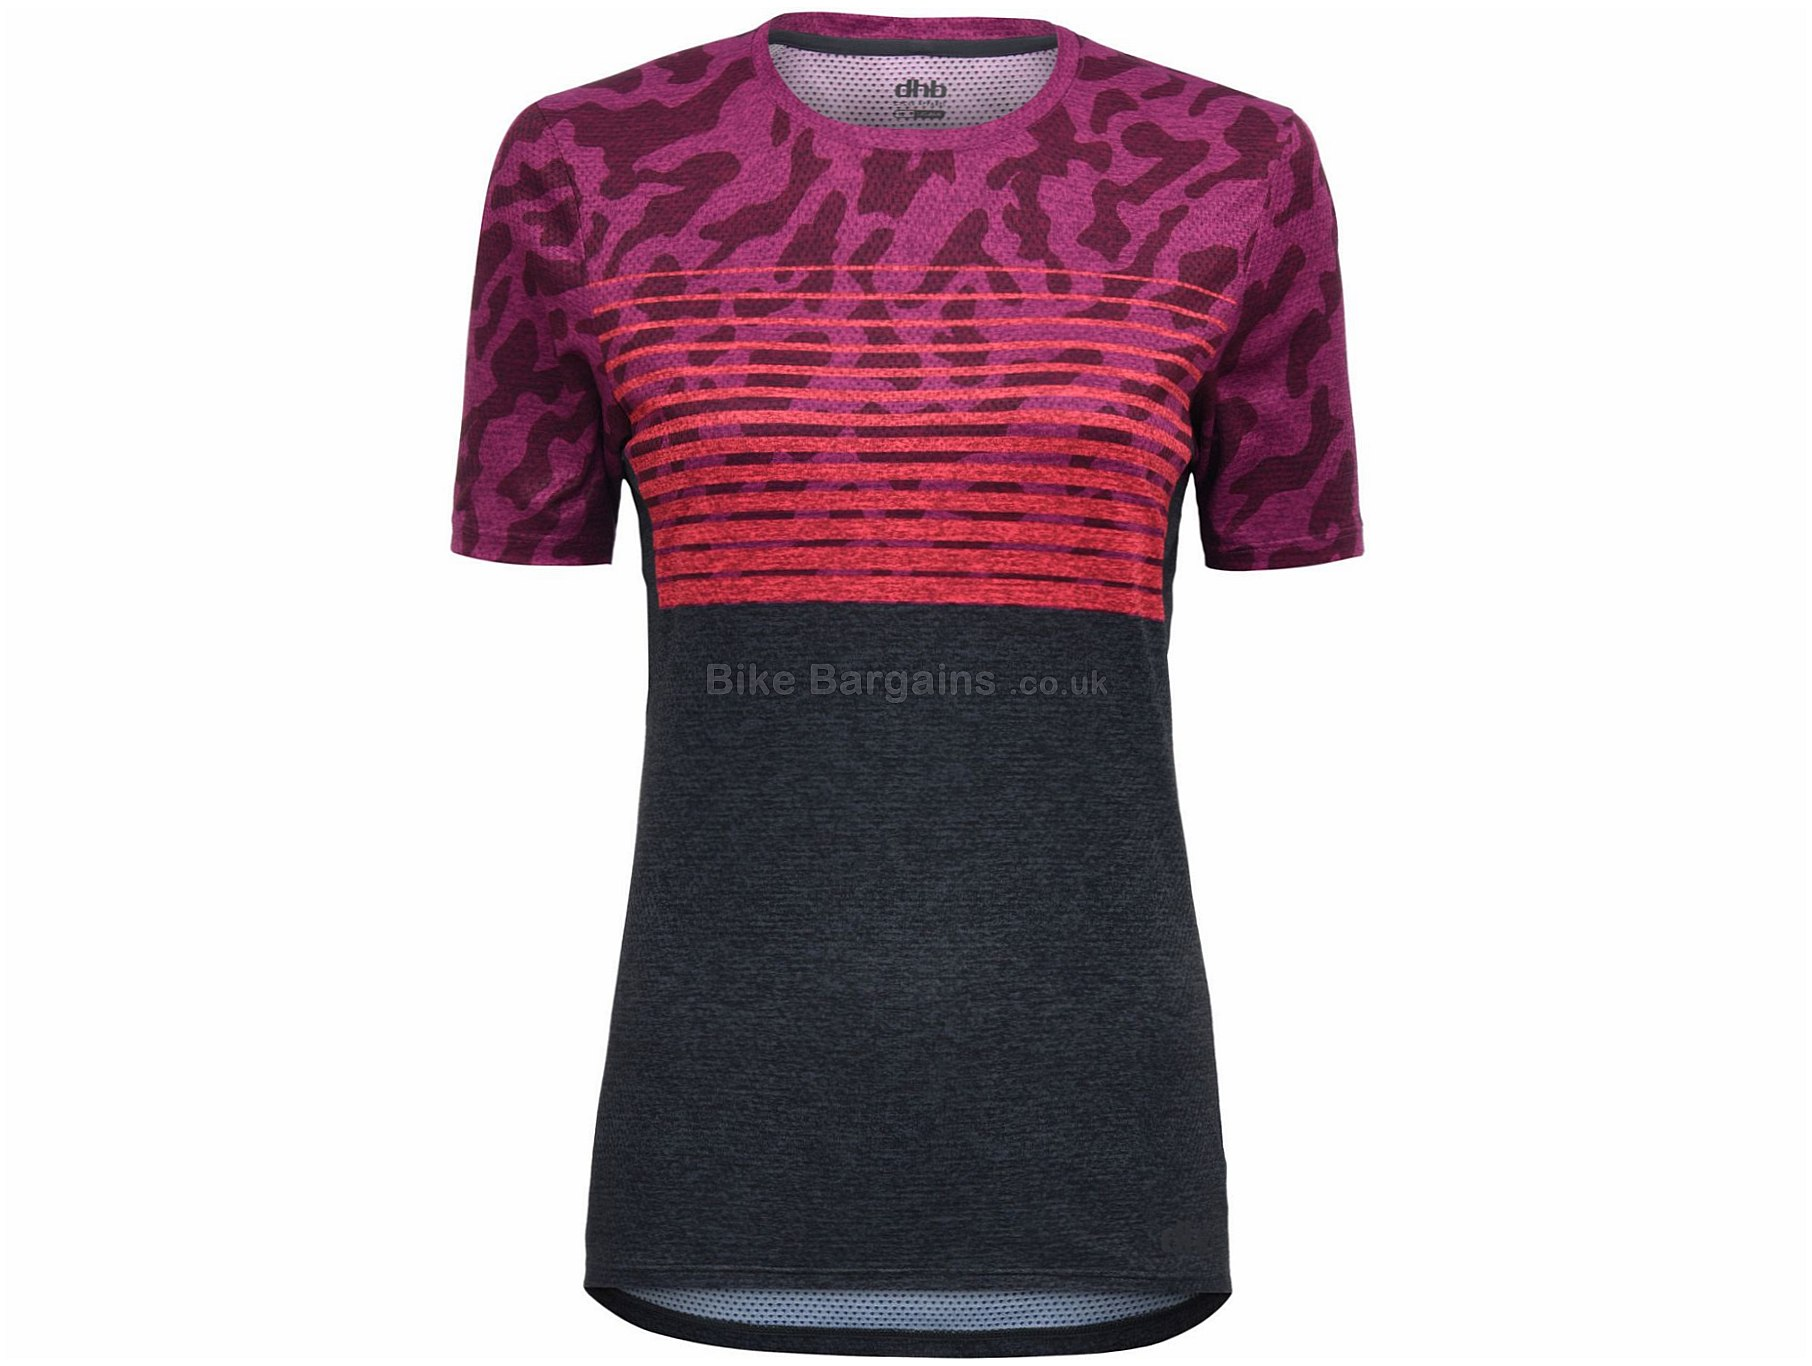 786f5bac9 dhb Ladies Camo Trail MTB Short Sleeve Jersey 2018 £12! was £30 - 8 ...